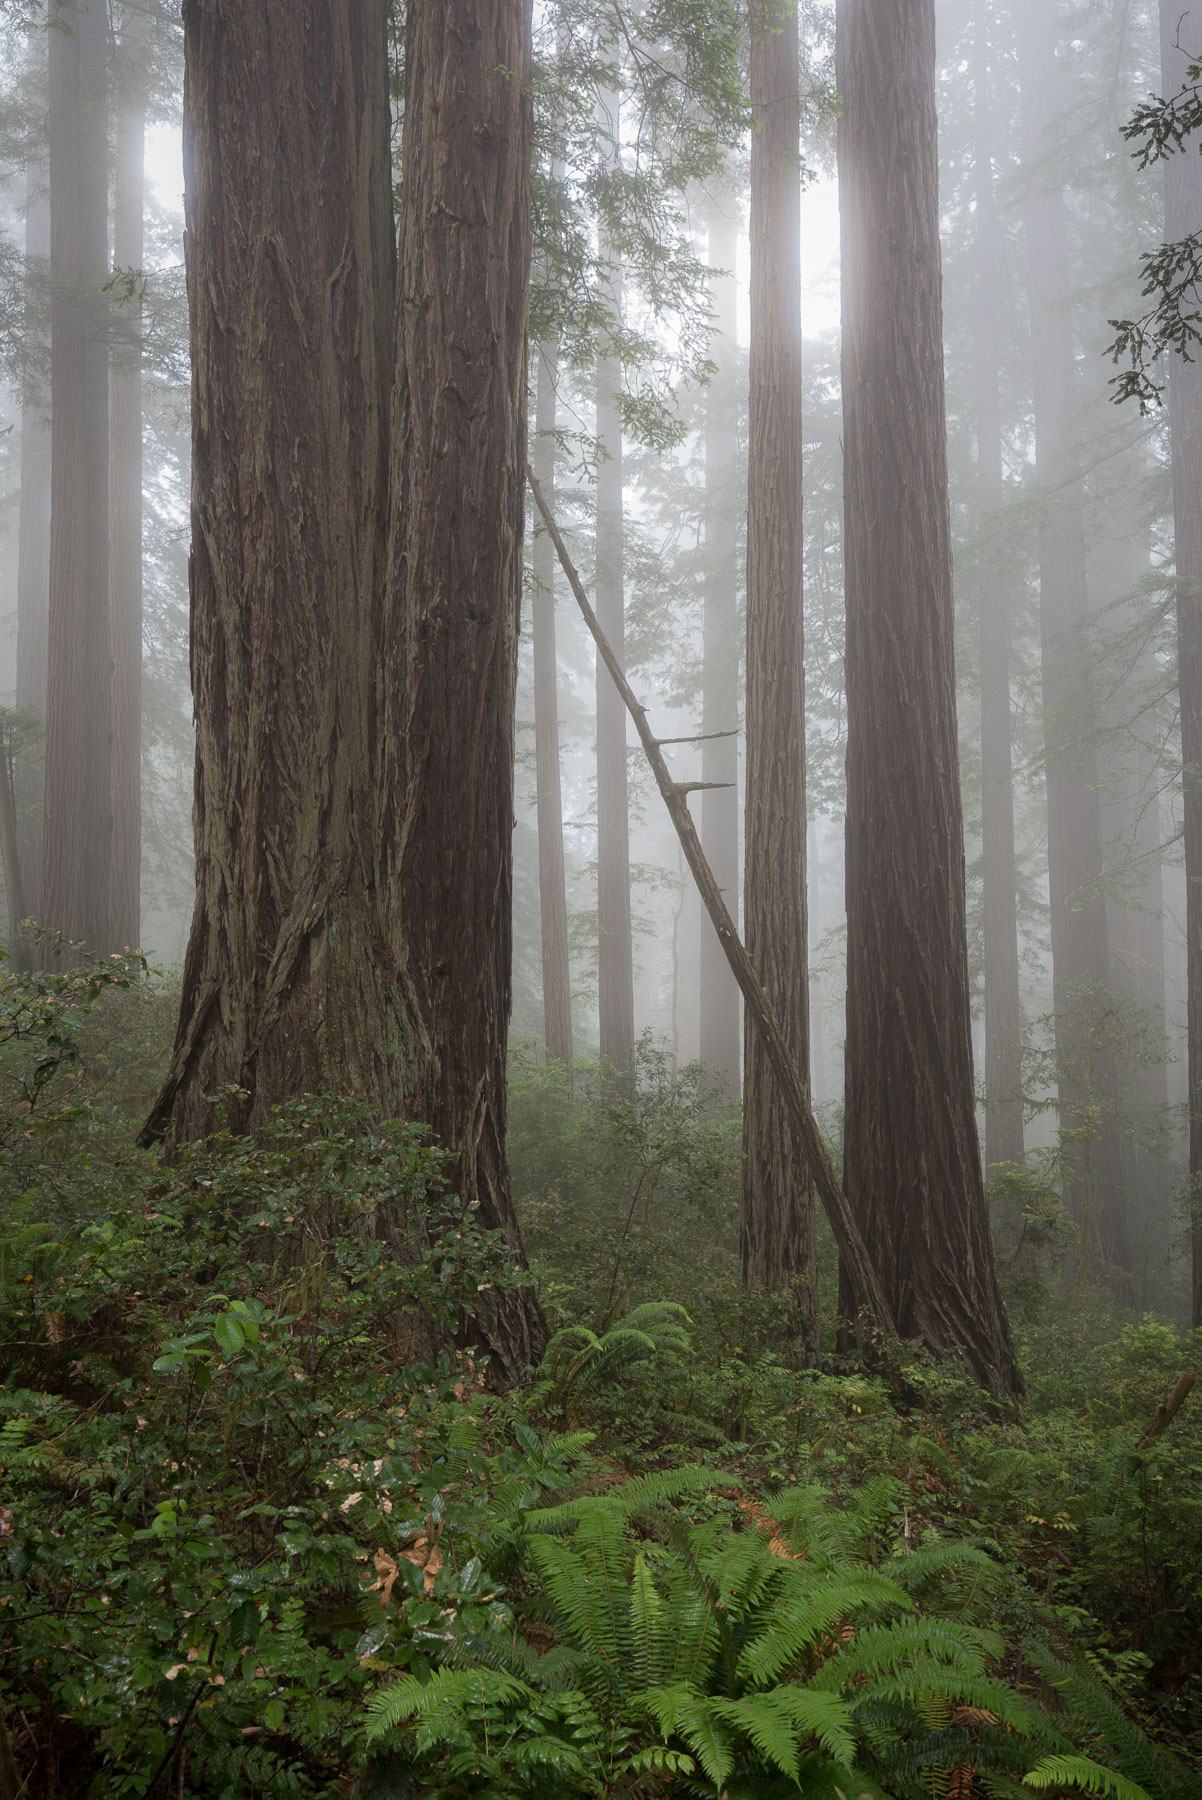 Fog-shrouded coastal redwoods in the Lady Bird Johnson grove. © 2017 Lance Keimig.